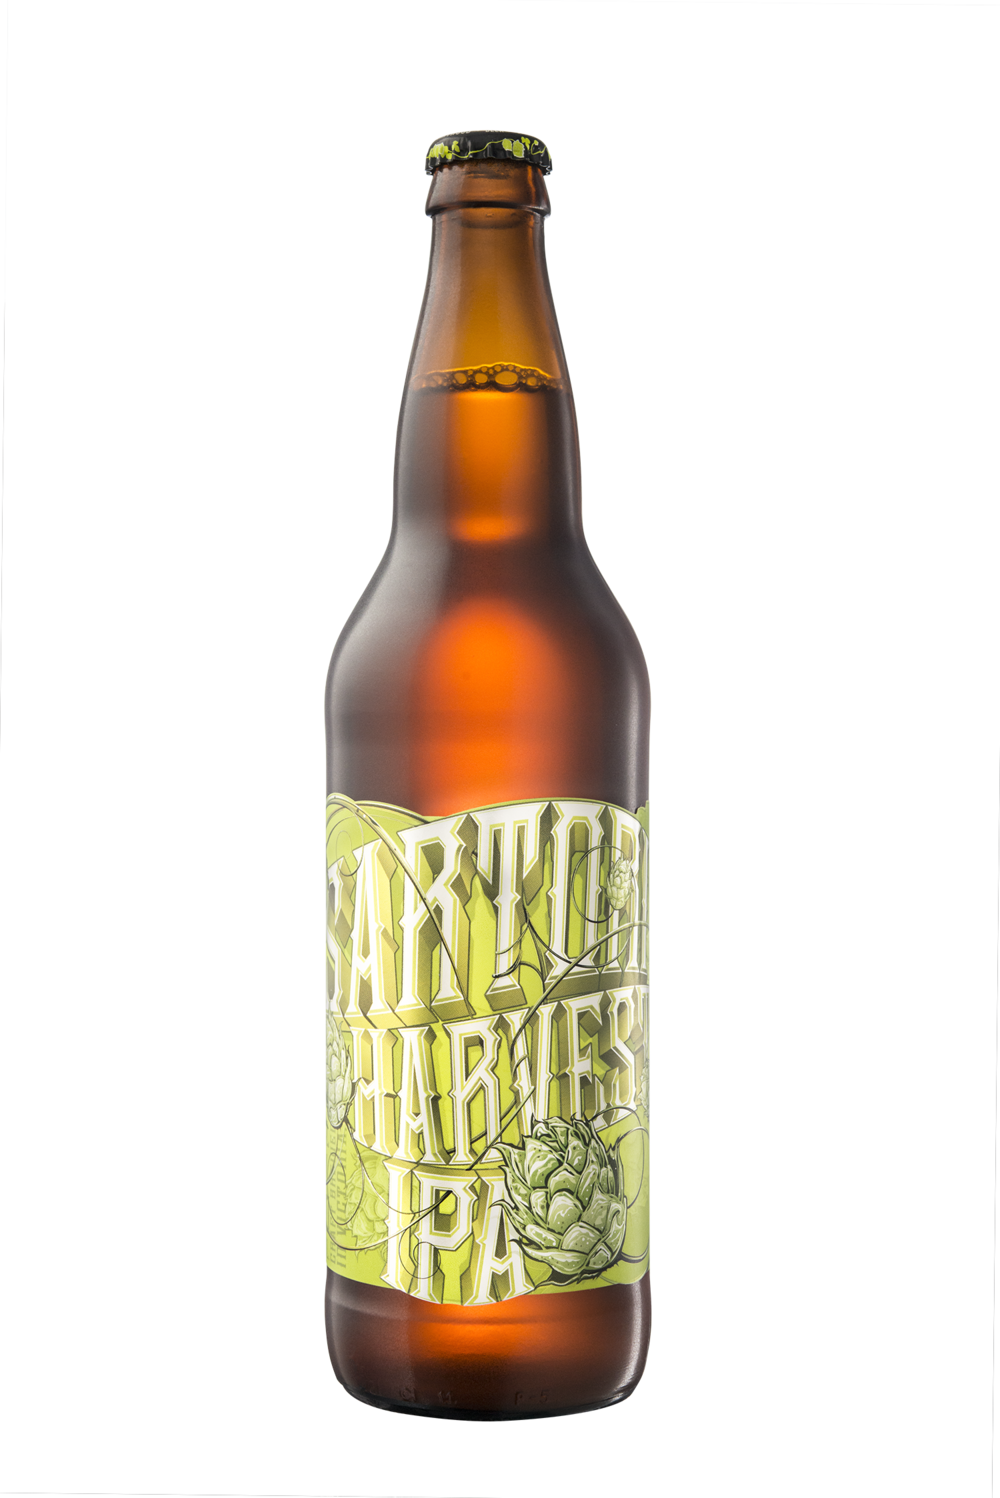 Packaging Design for Driftwood Brewery's Sartori Harvest IPA